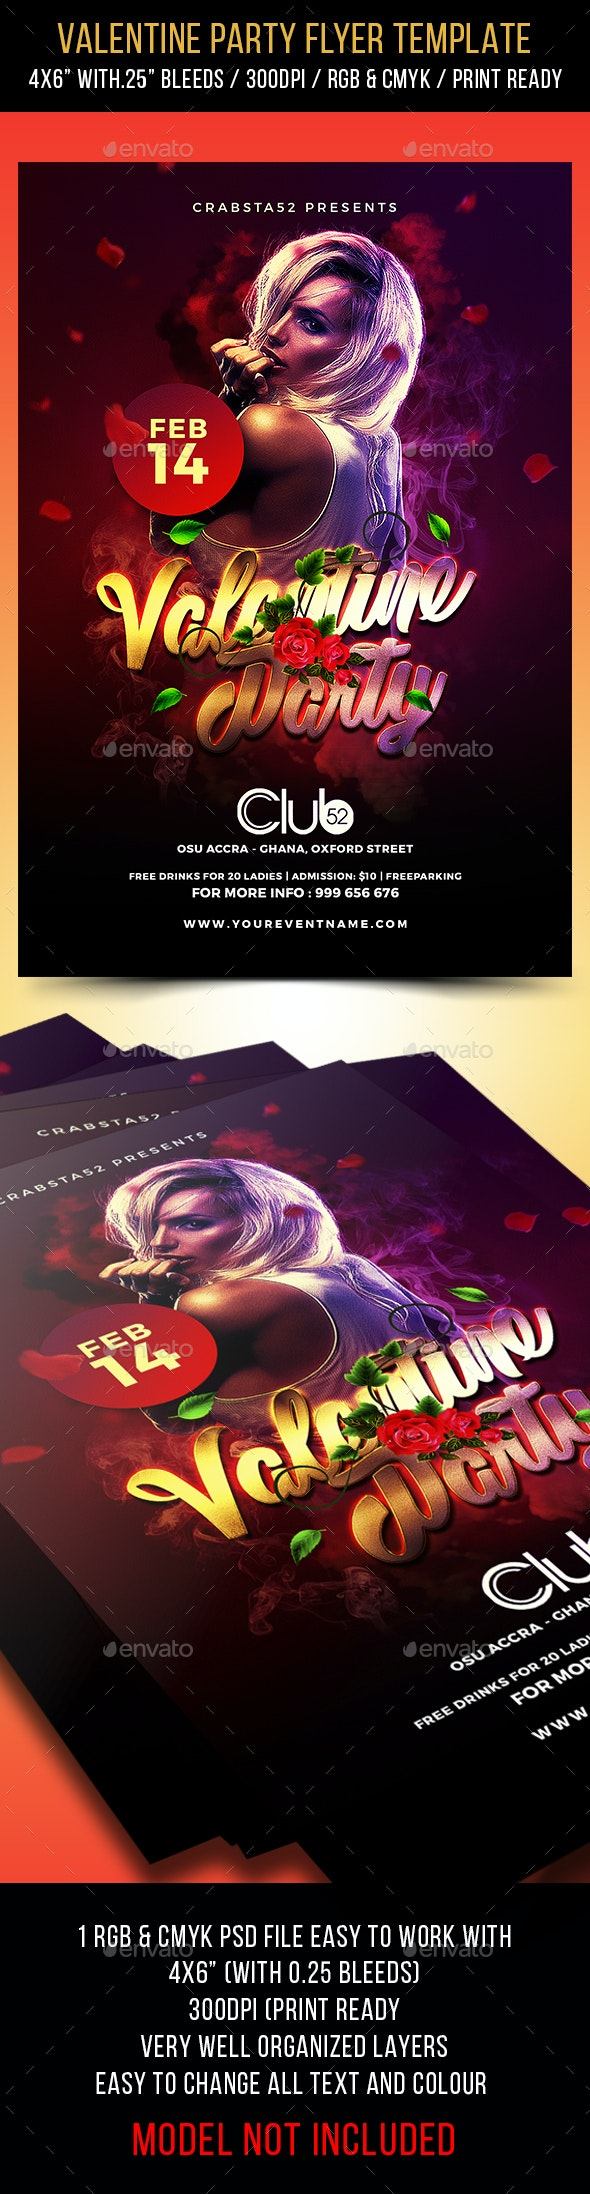 Valentine Party Flyer Template 3 - Events Flyers